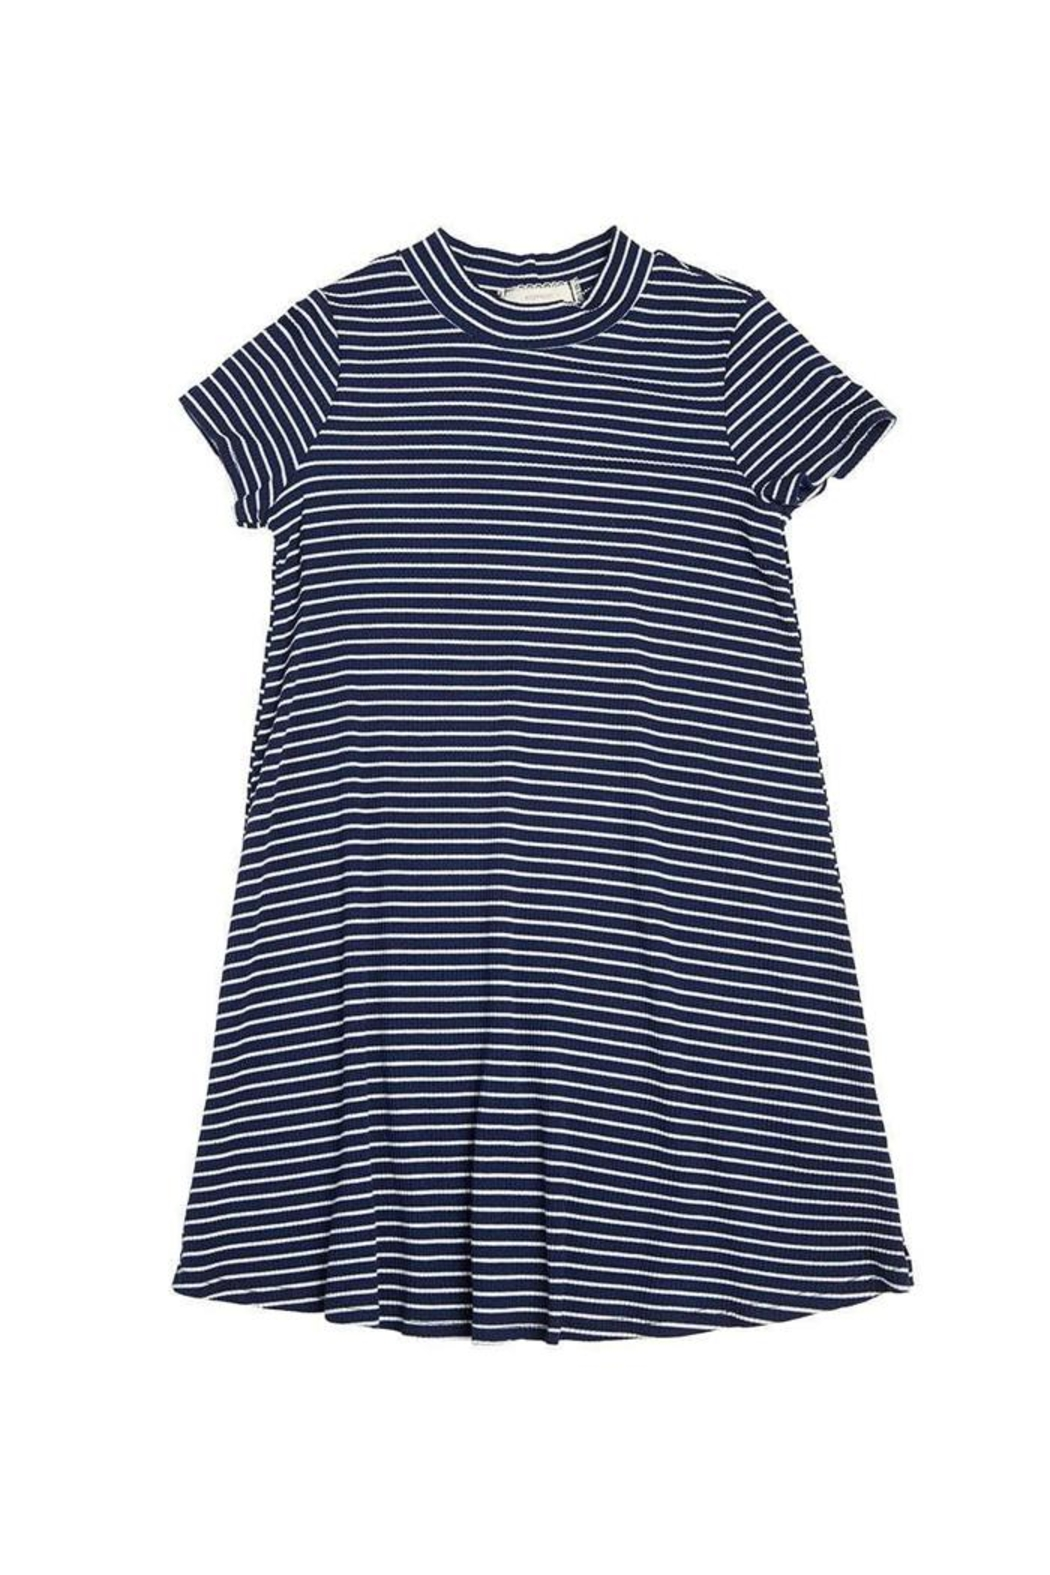 Soprano Navy Striped Dress - Front Cropped Image